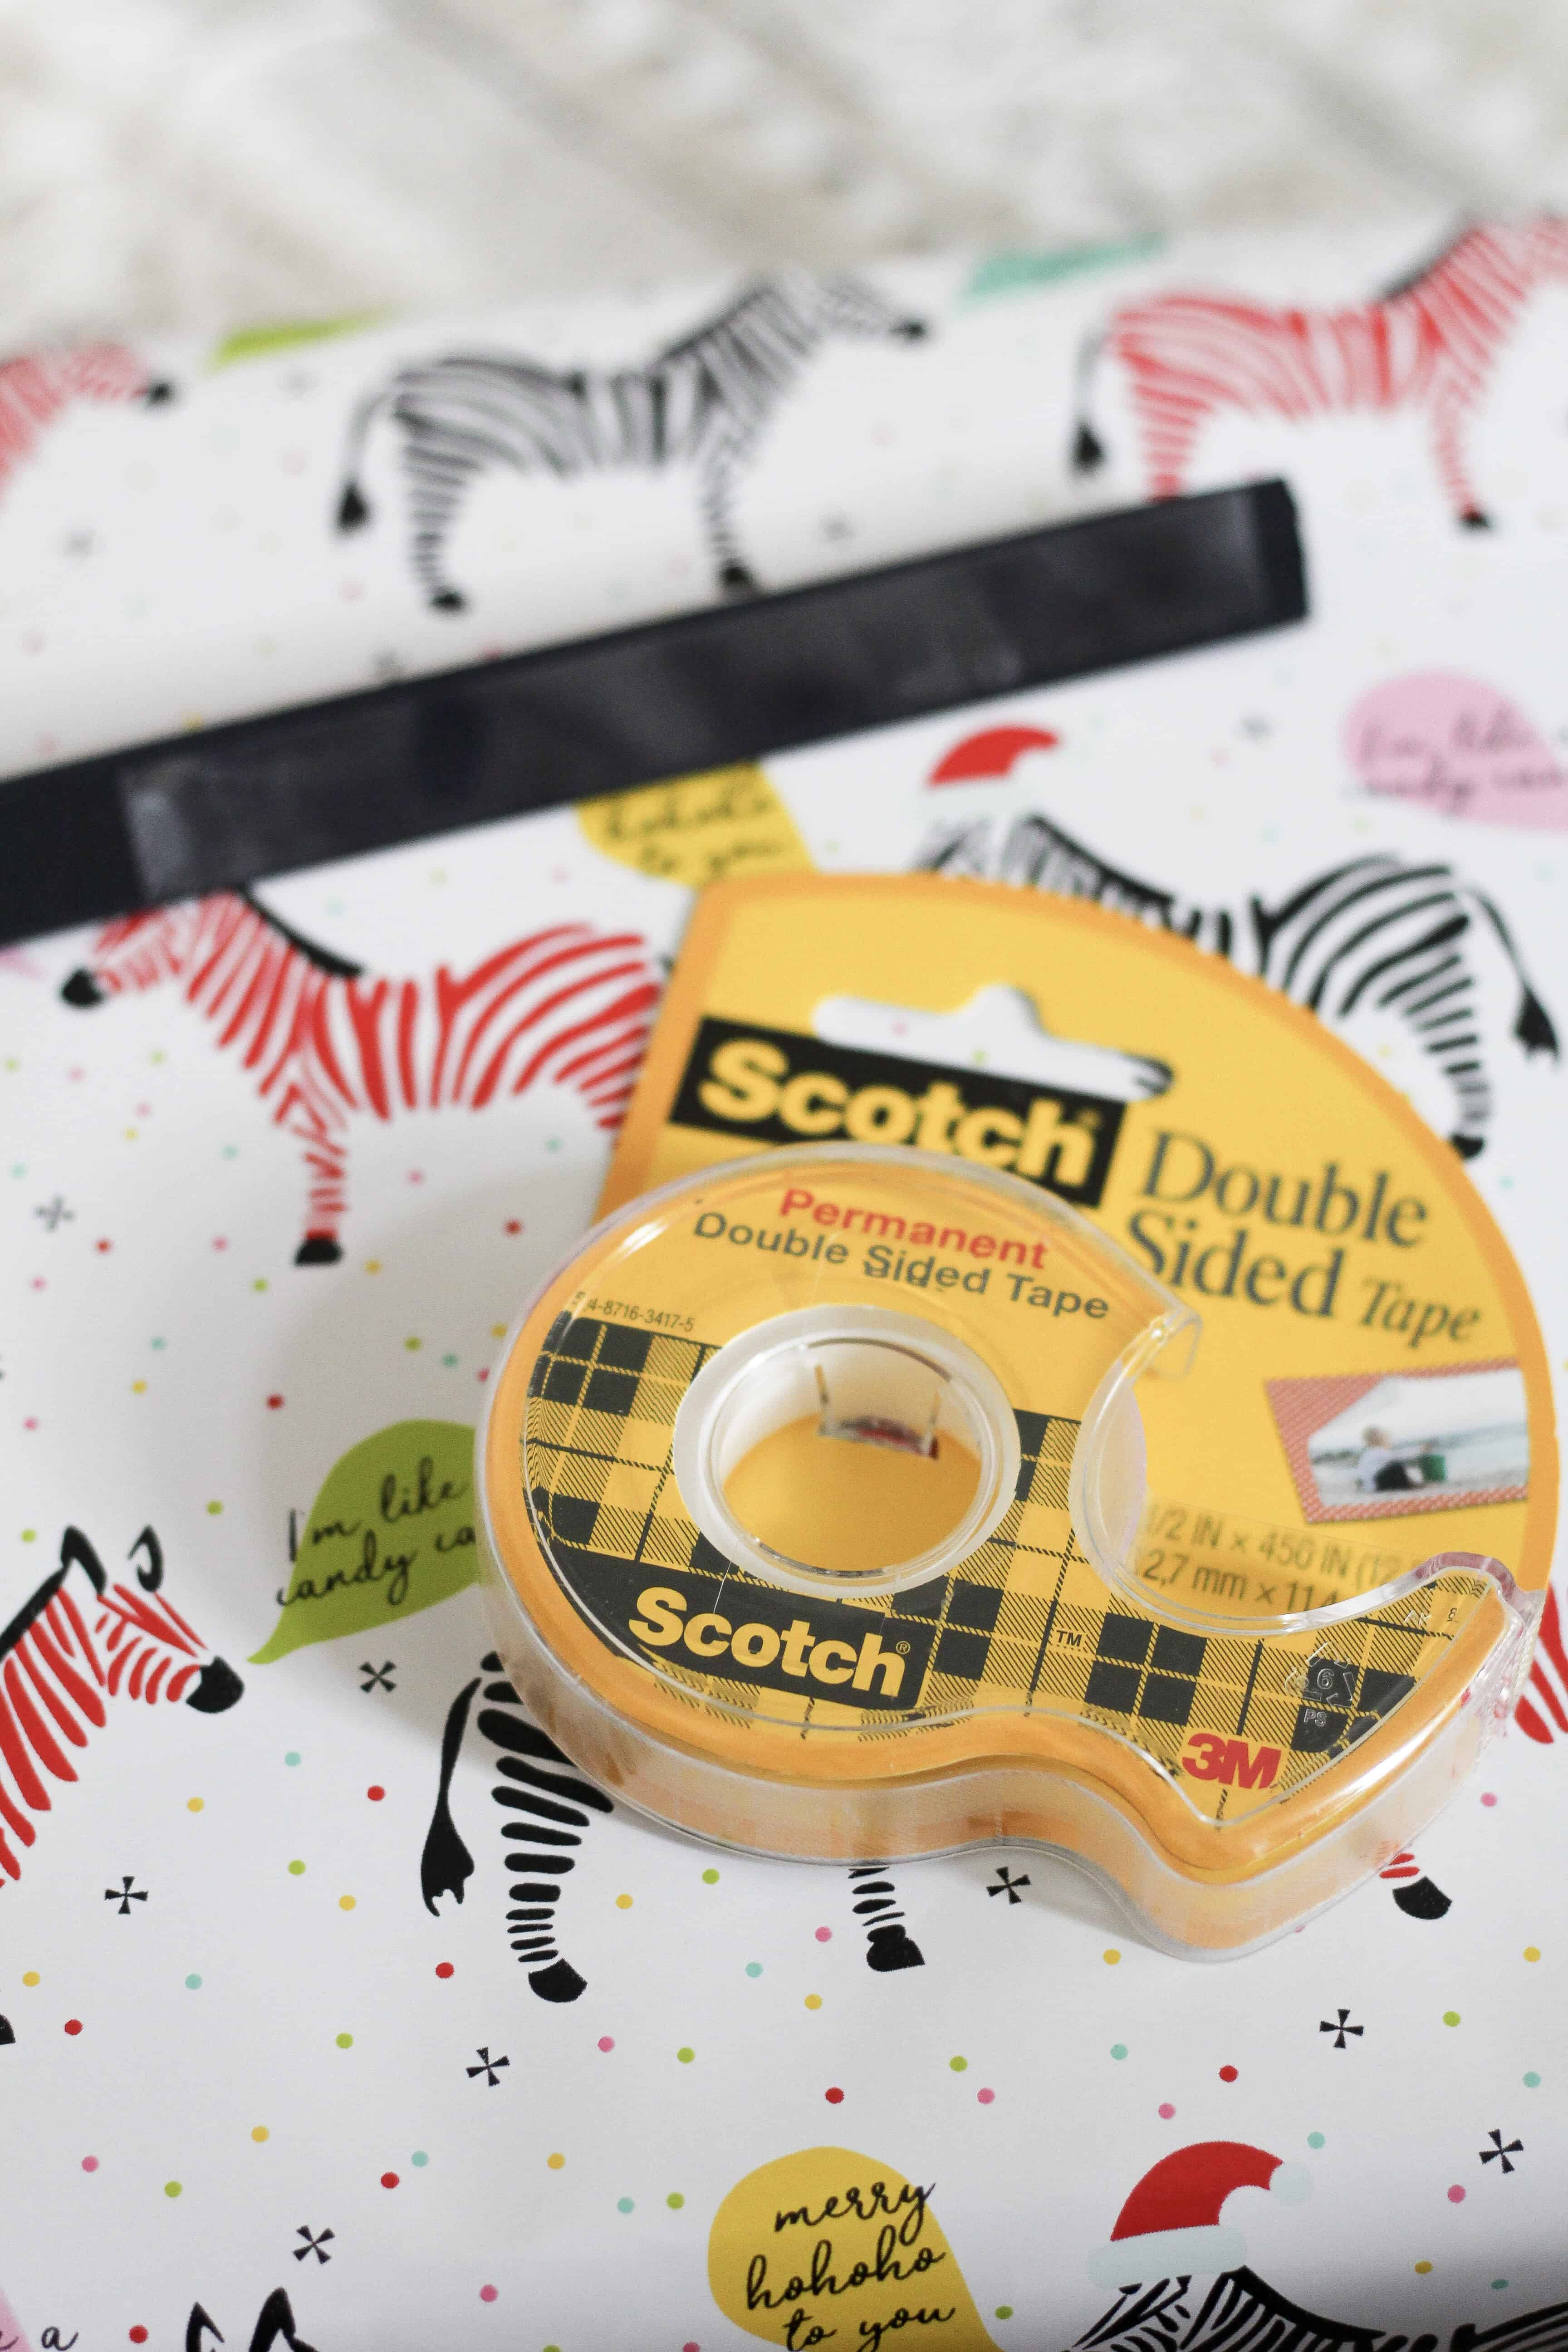 Scotch Double Sided tape on presents